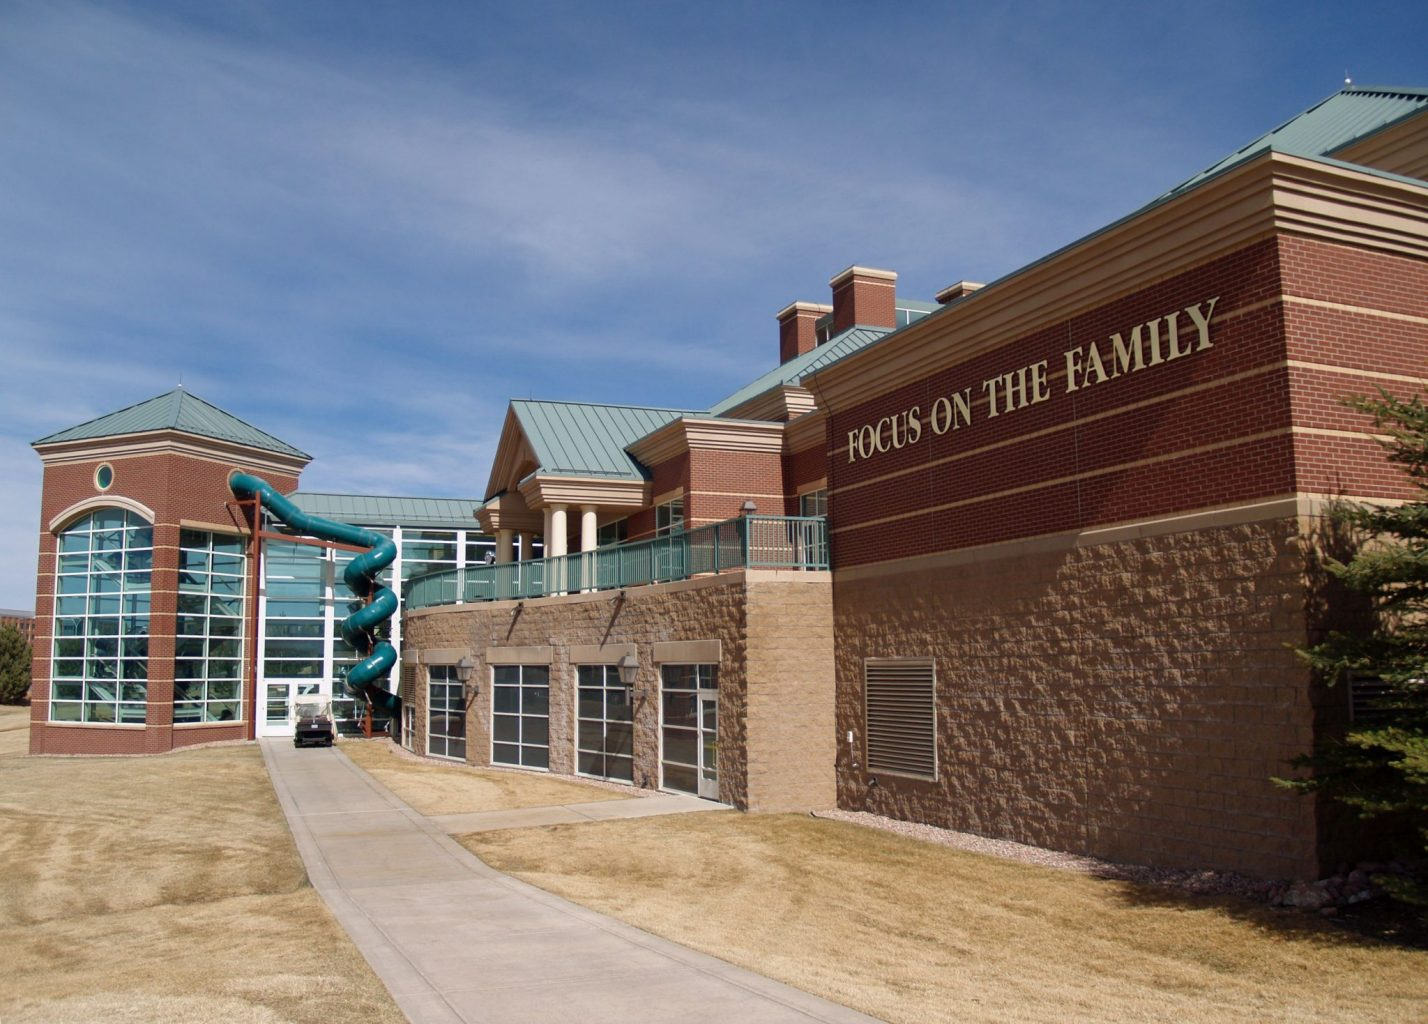 The Focus on The Family Visitor Center is a top pick aongst the Free Things To Do In Colorado Springs